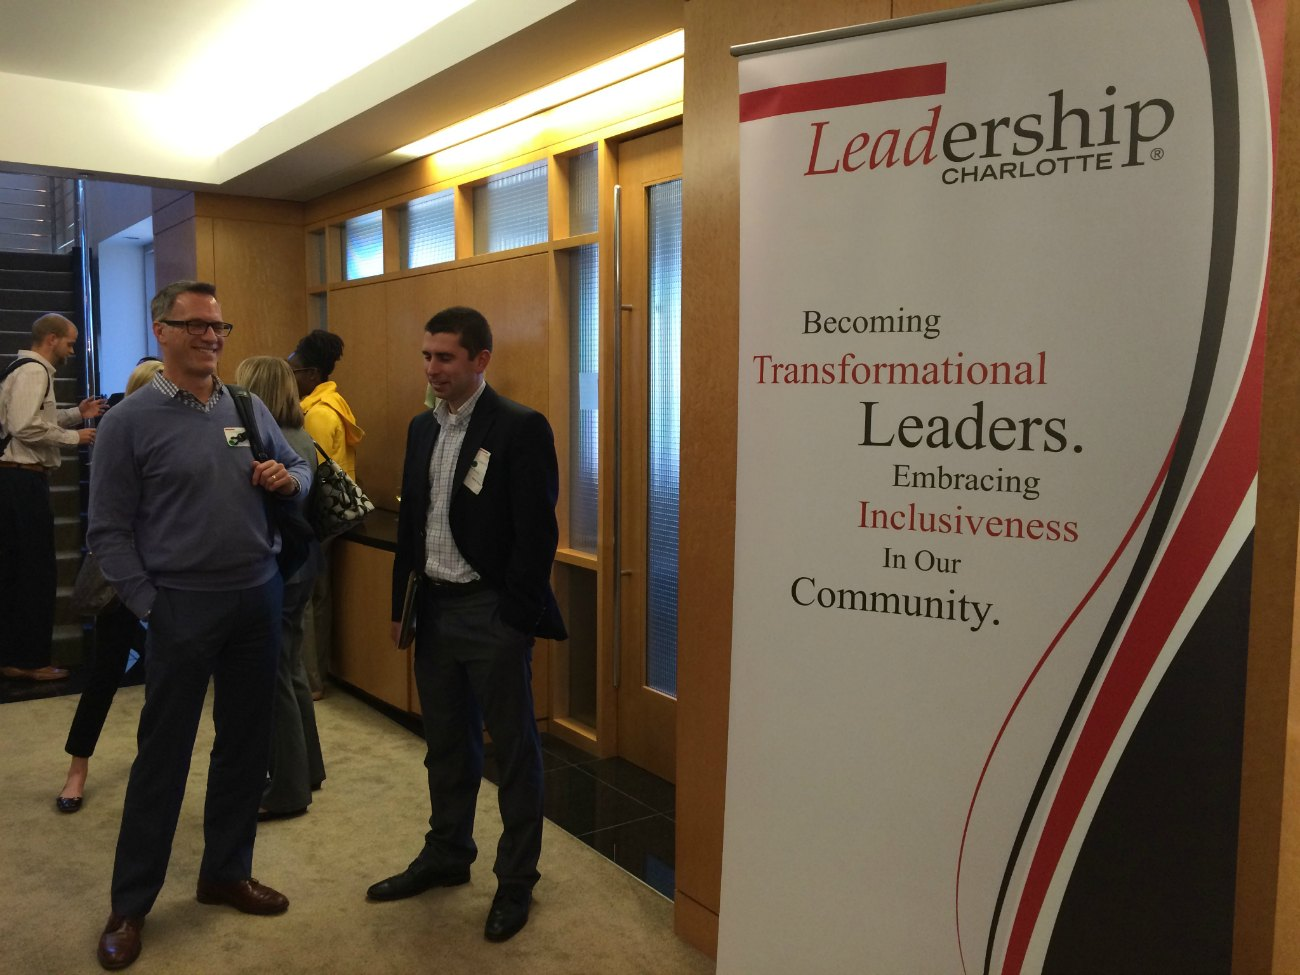 8 fast facts I learned at Leadership Charlotte's one-day immersion program ENCOUNTER